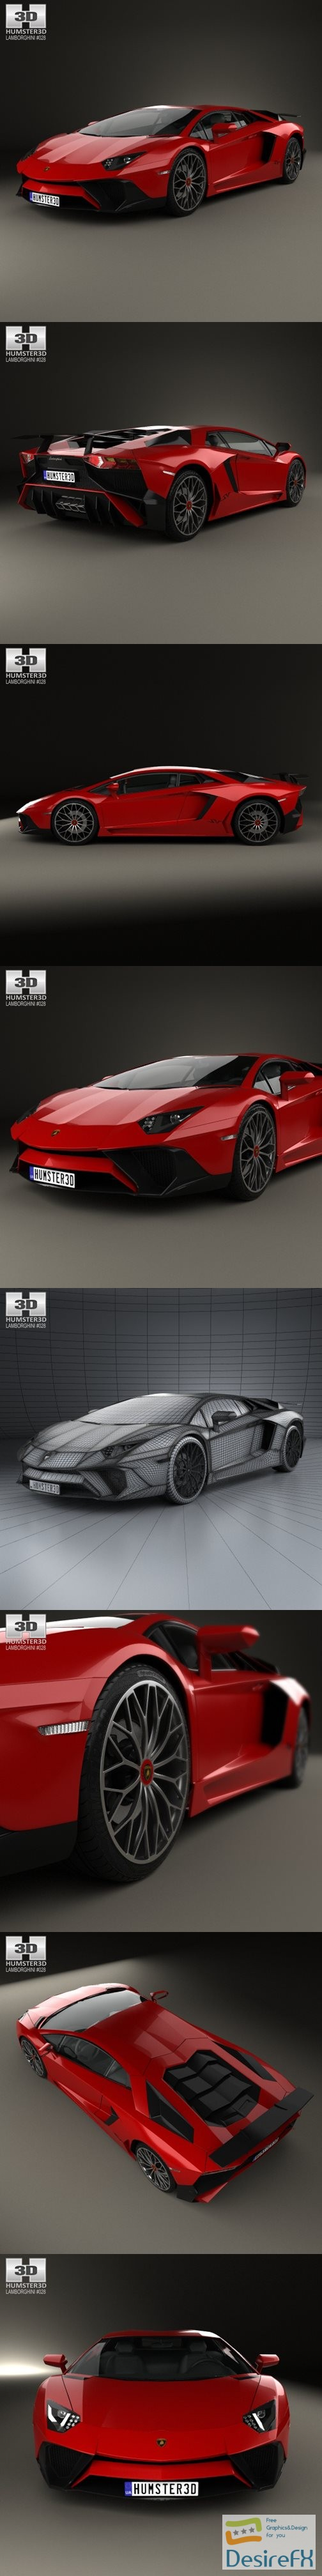 3d-models - Lamborghini Aventador LP 750-4 SuperVeloce 3D Model